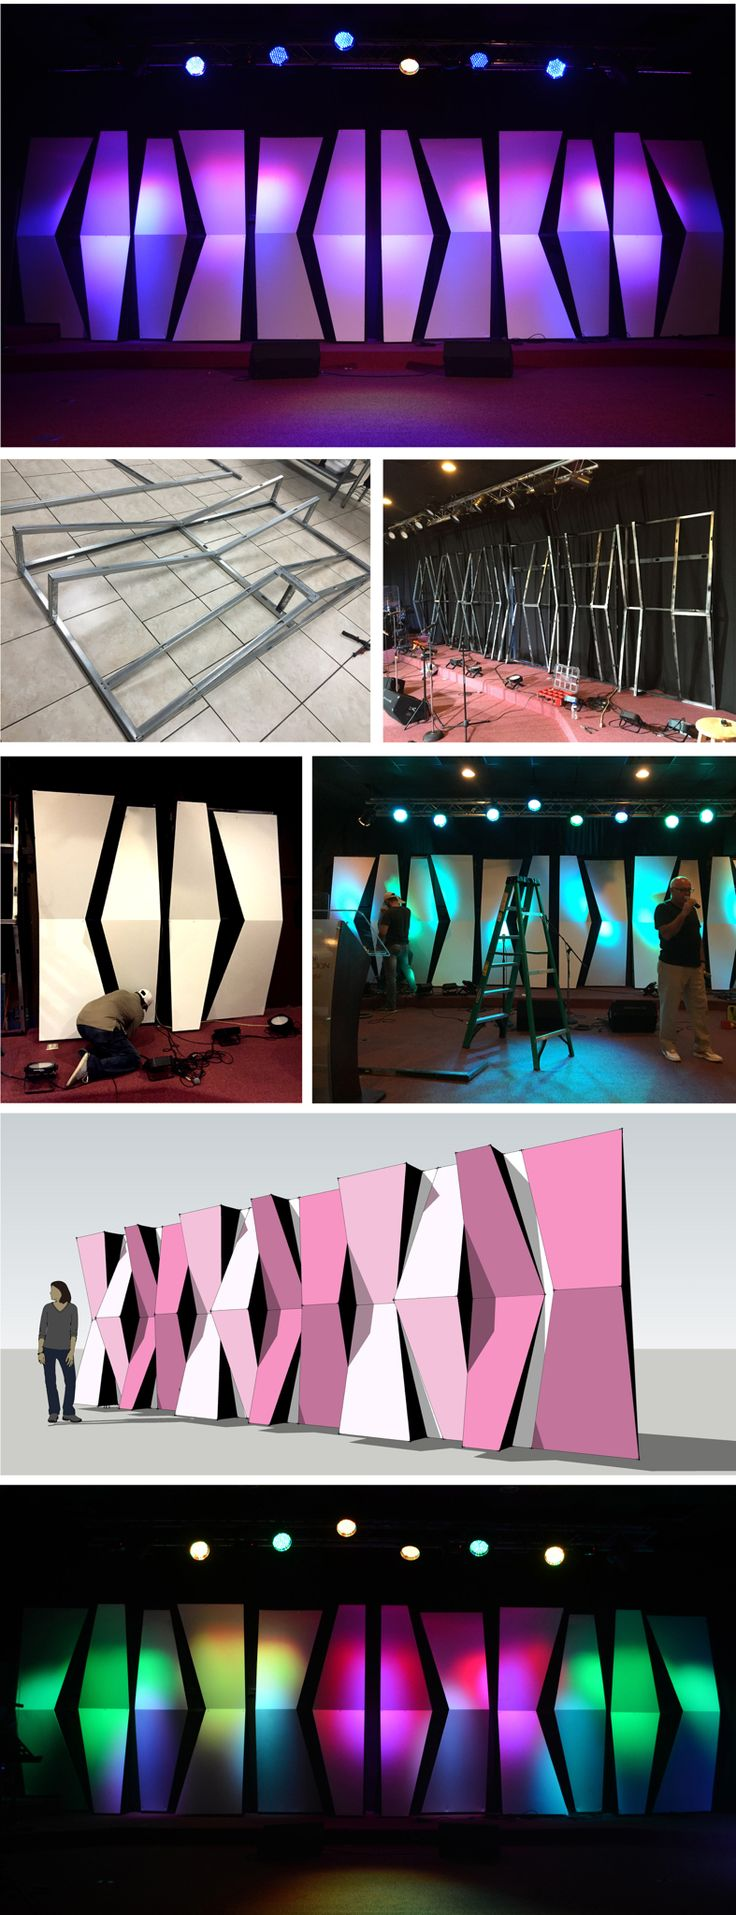 Stage Design| How to achieve big effects with small space & budget. Church Stage Design from Casa de Adoración Jabes in Bayamón, PR. Made from Coroplast.